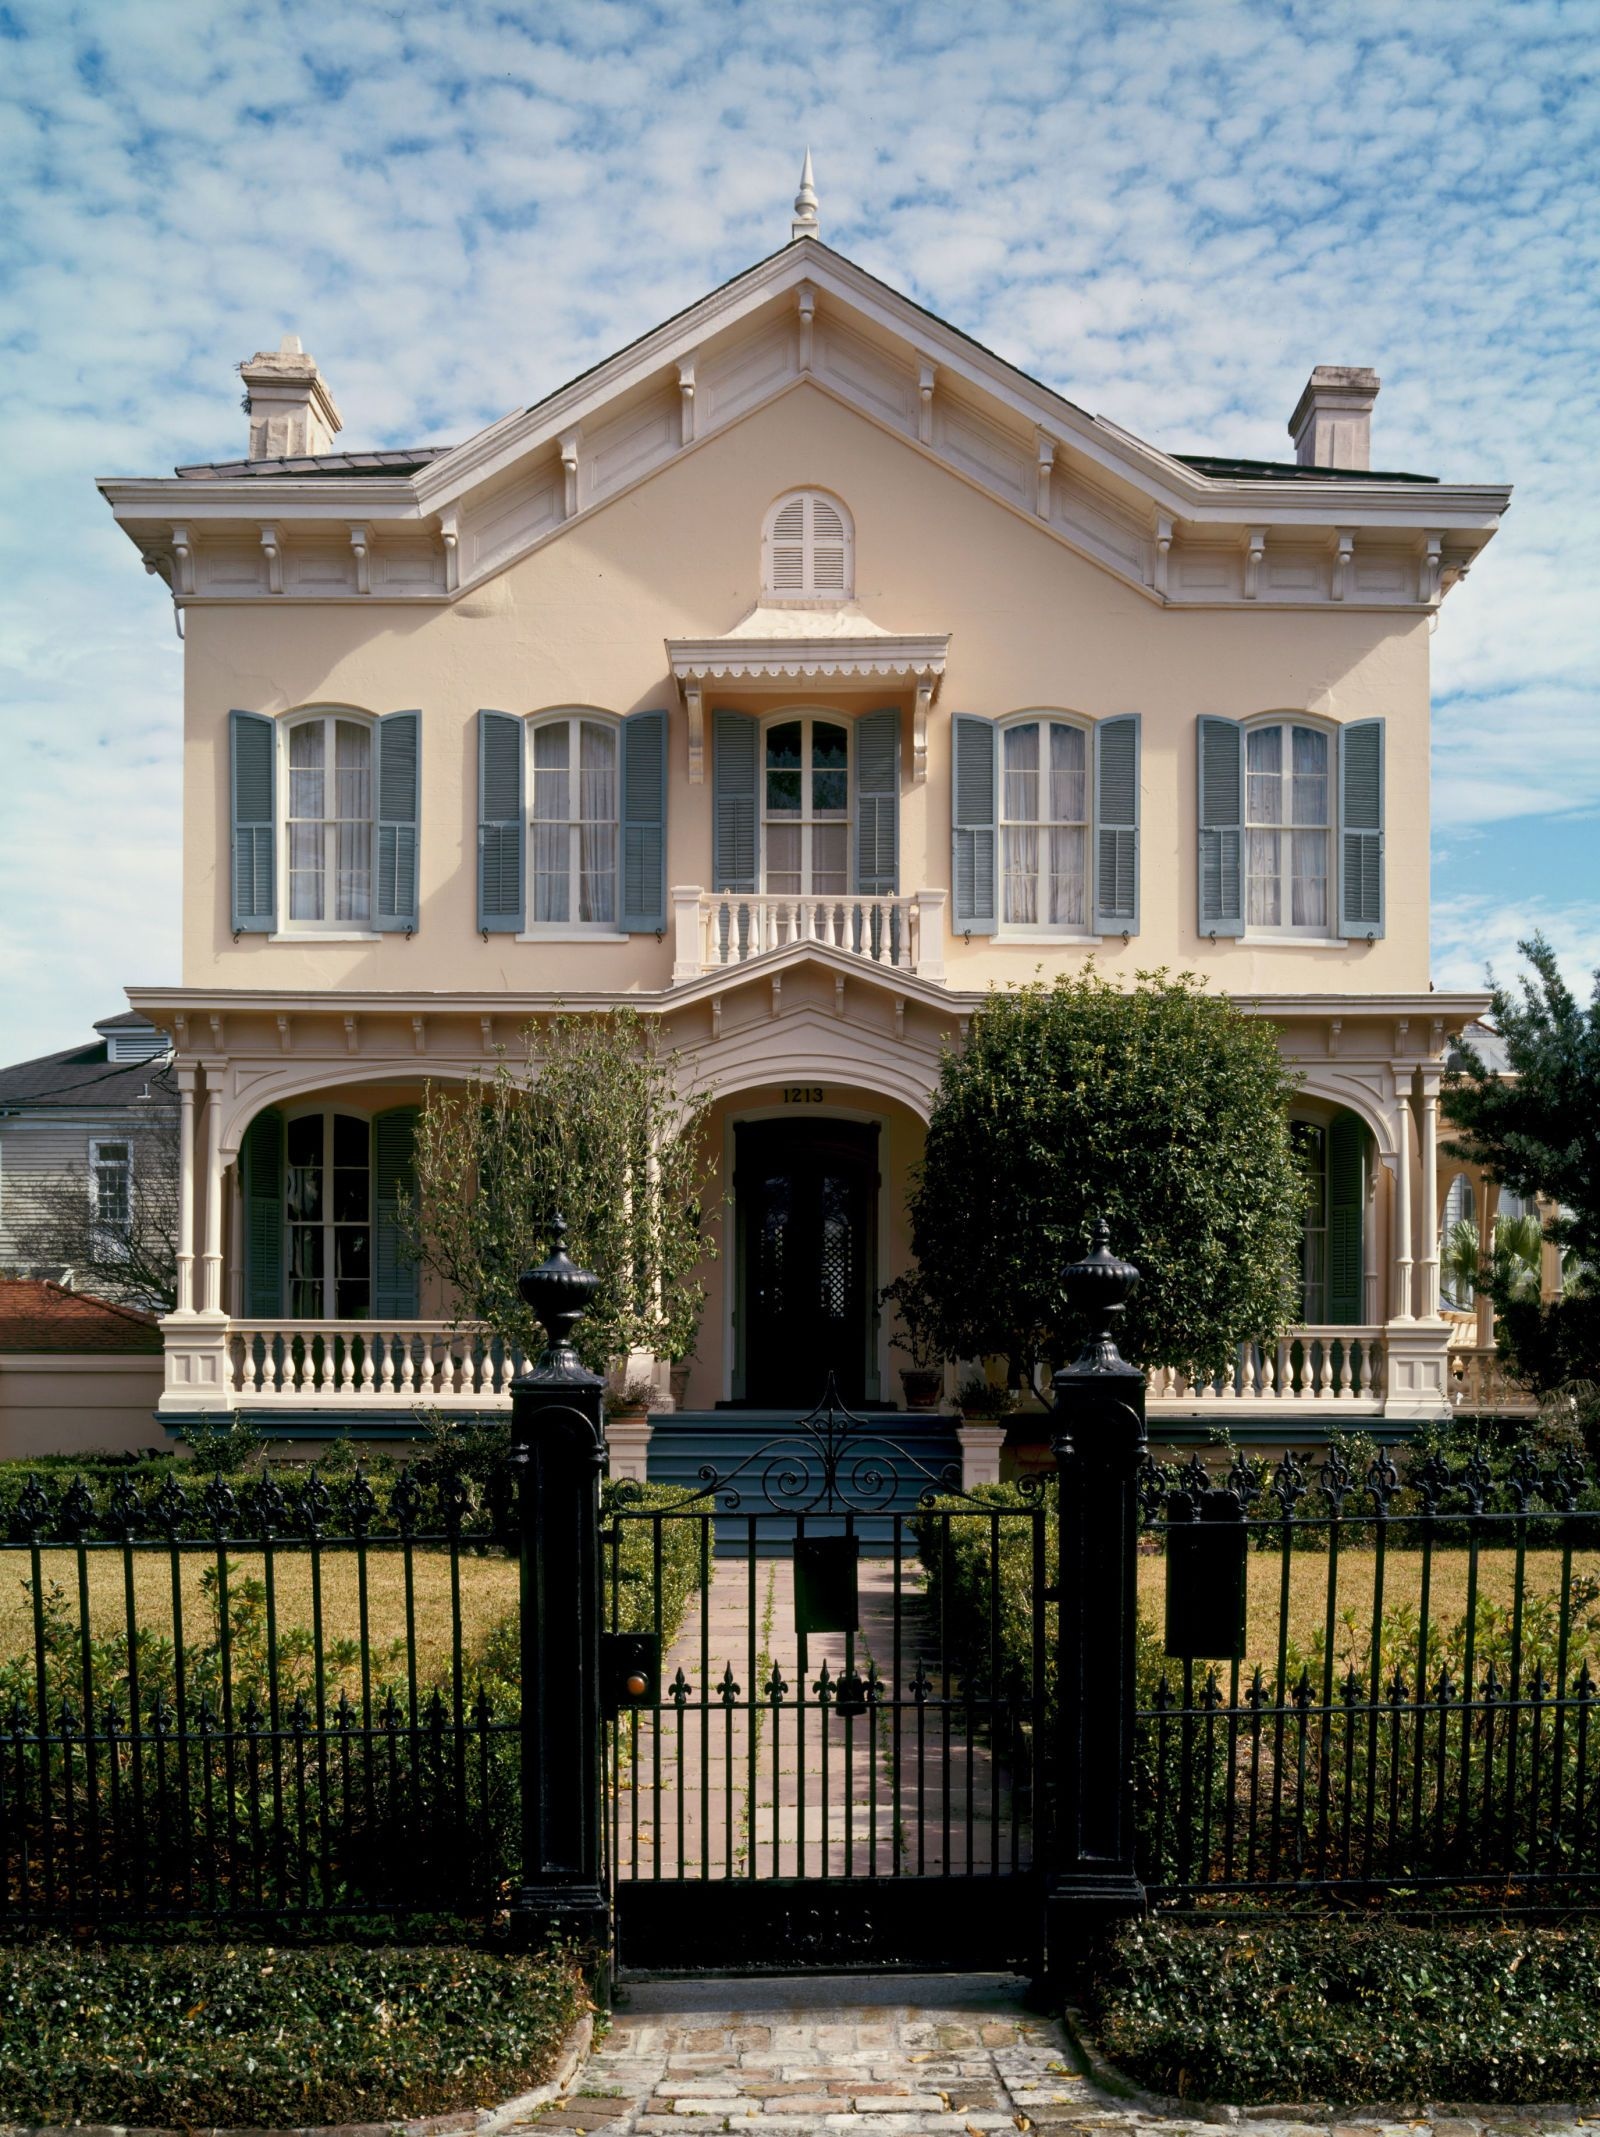 This is just one of the stunning home in louisiana that   brimming with charm and endless curb appeal also new book offers  peek inside some most rh pinterest